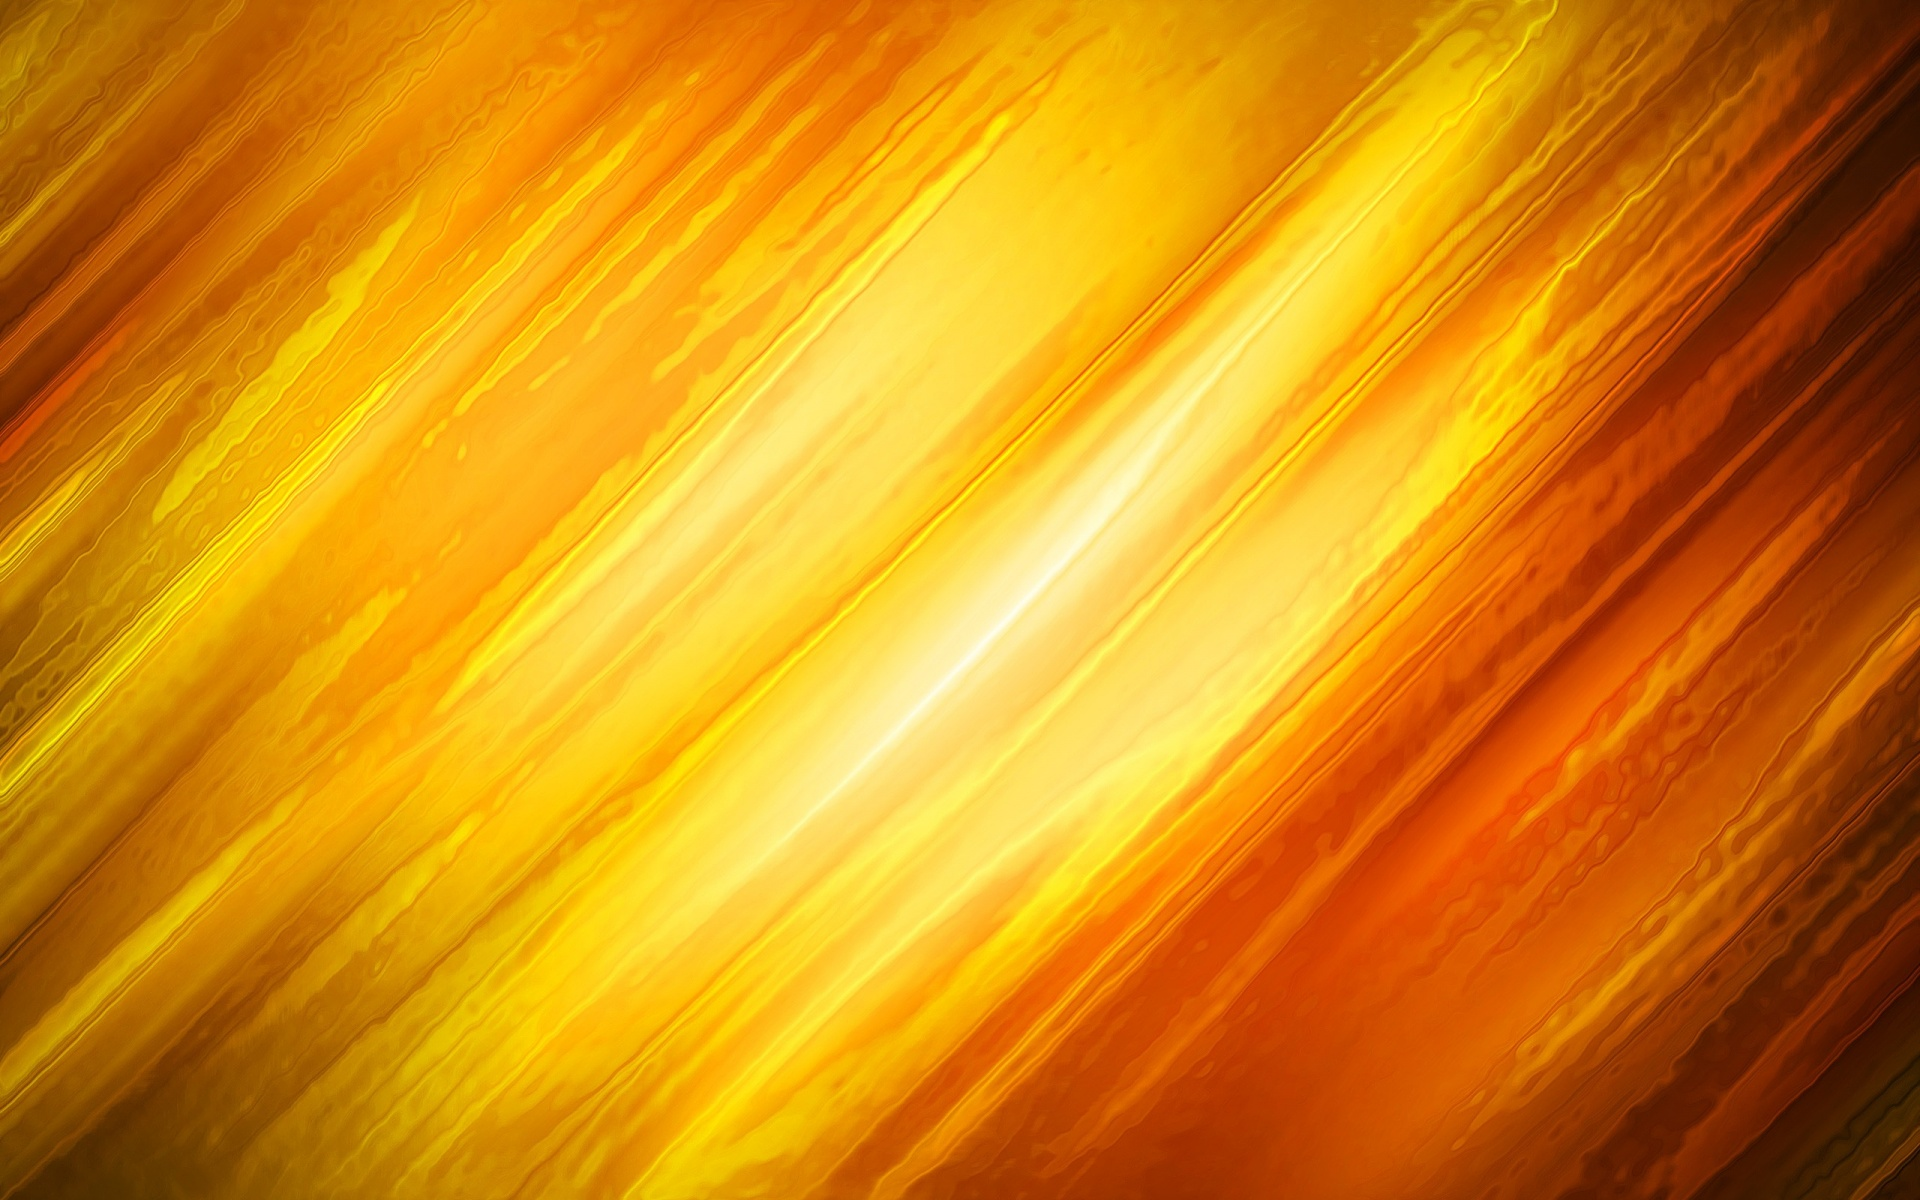 Yellow Color - Wallpaper, High Definition, High Quality, Widescreen